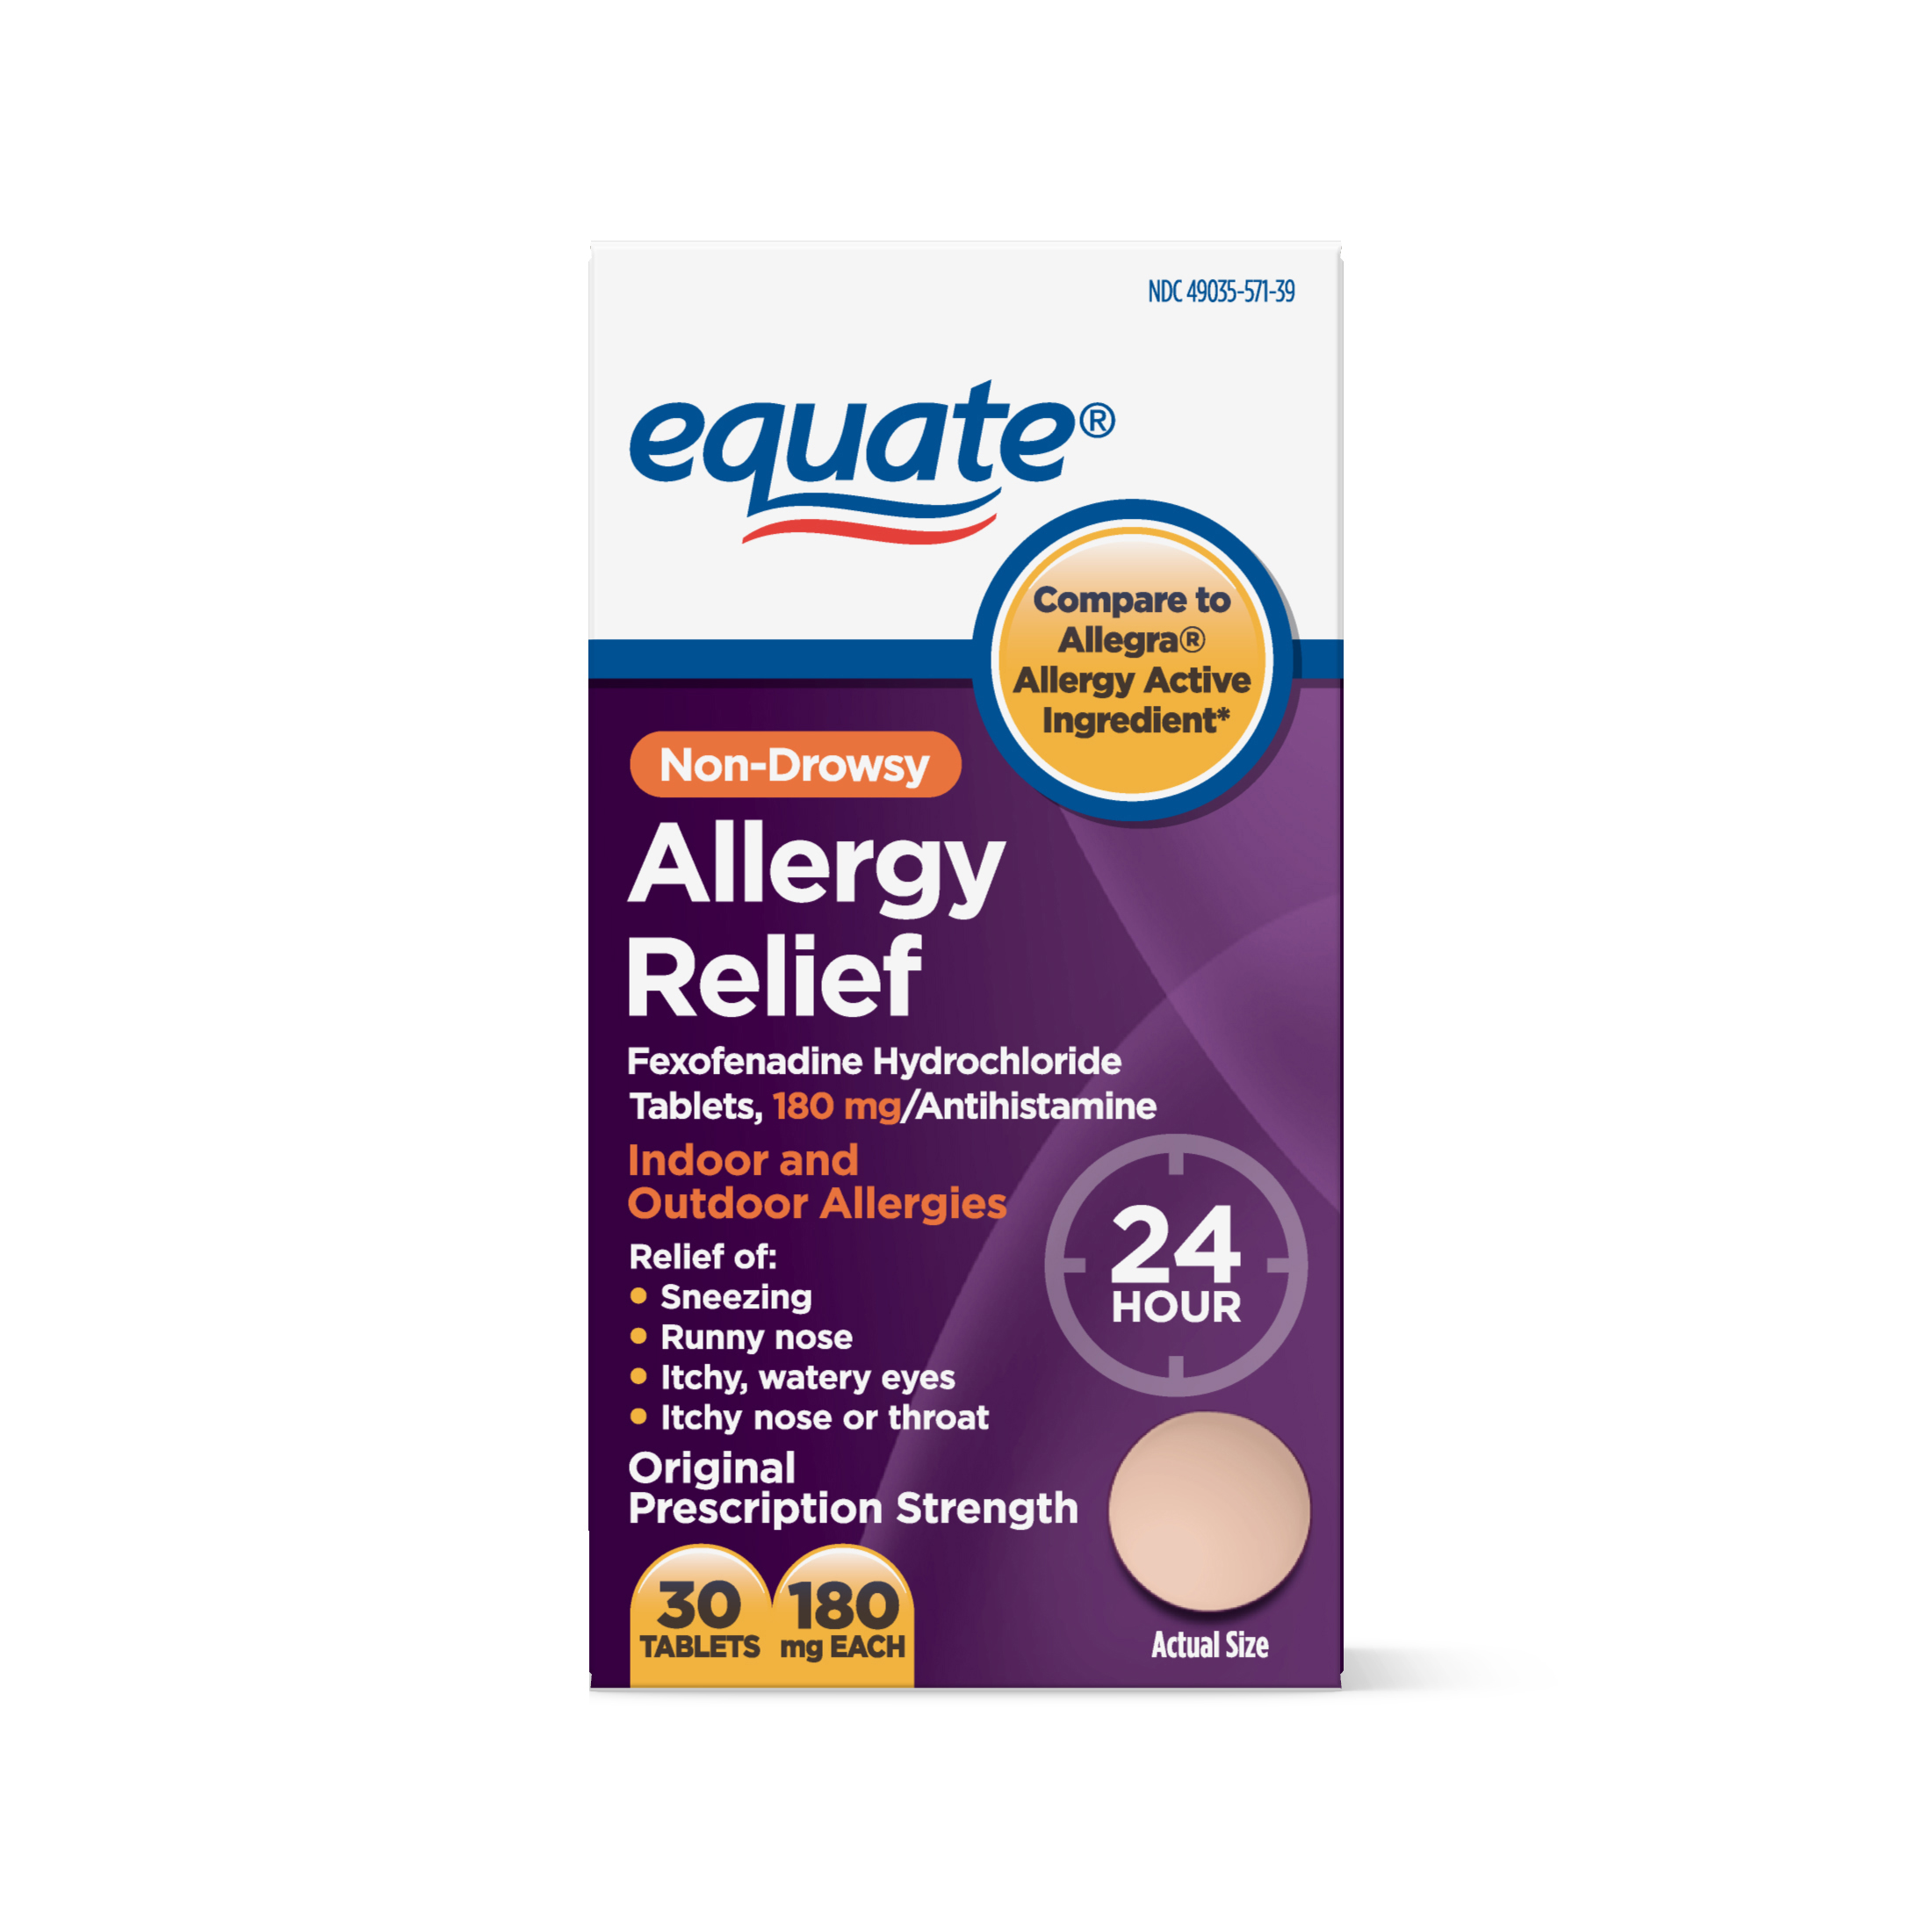 Equate Allergy Relief Fexofenadine Tablets, 180 mg, 30 Ct - Walmart.com at Walmart - Vision Center in Connersville, IN | Tuggl